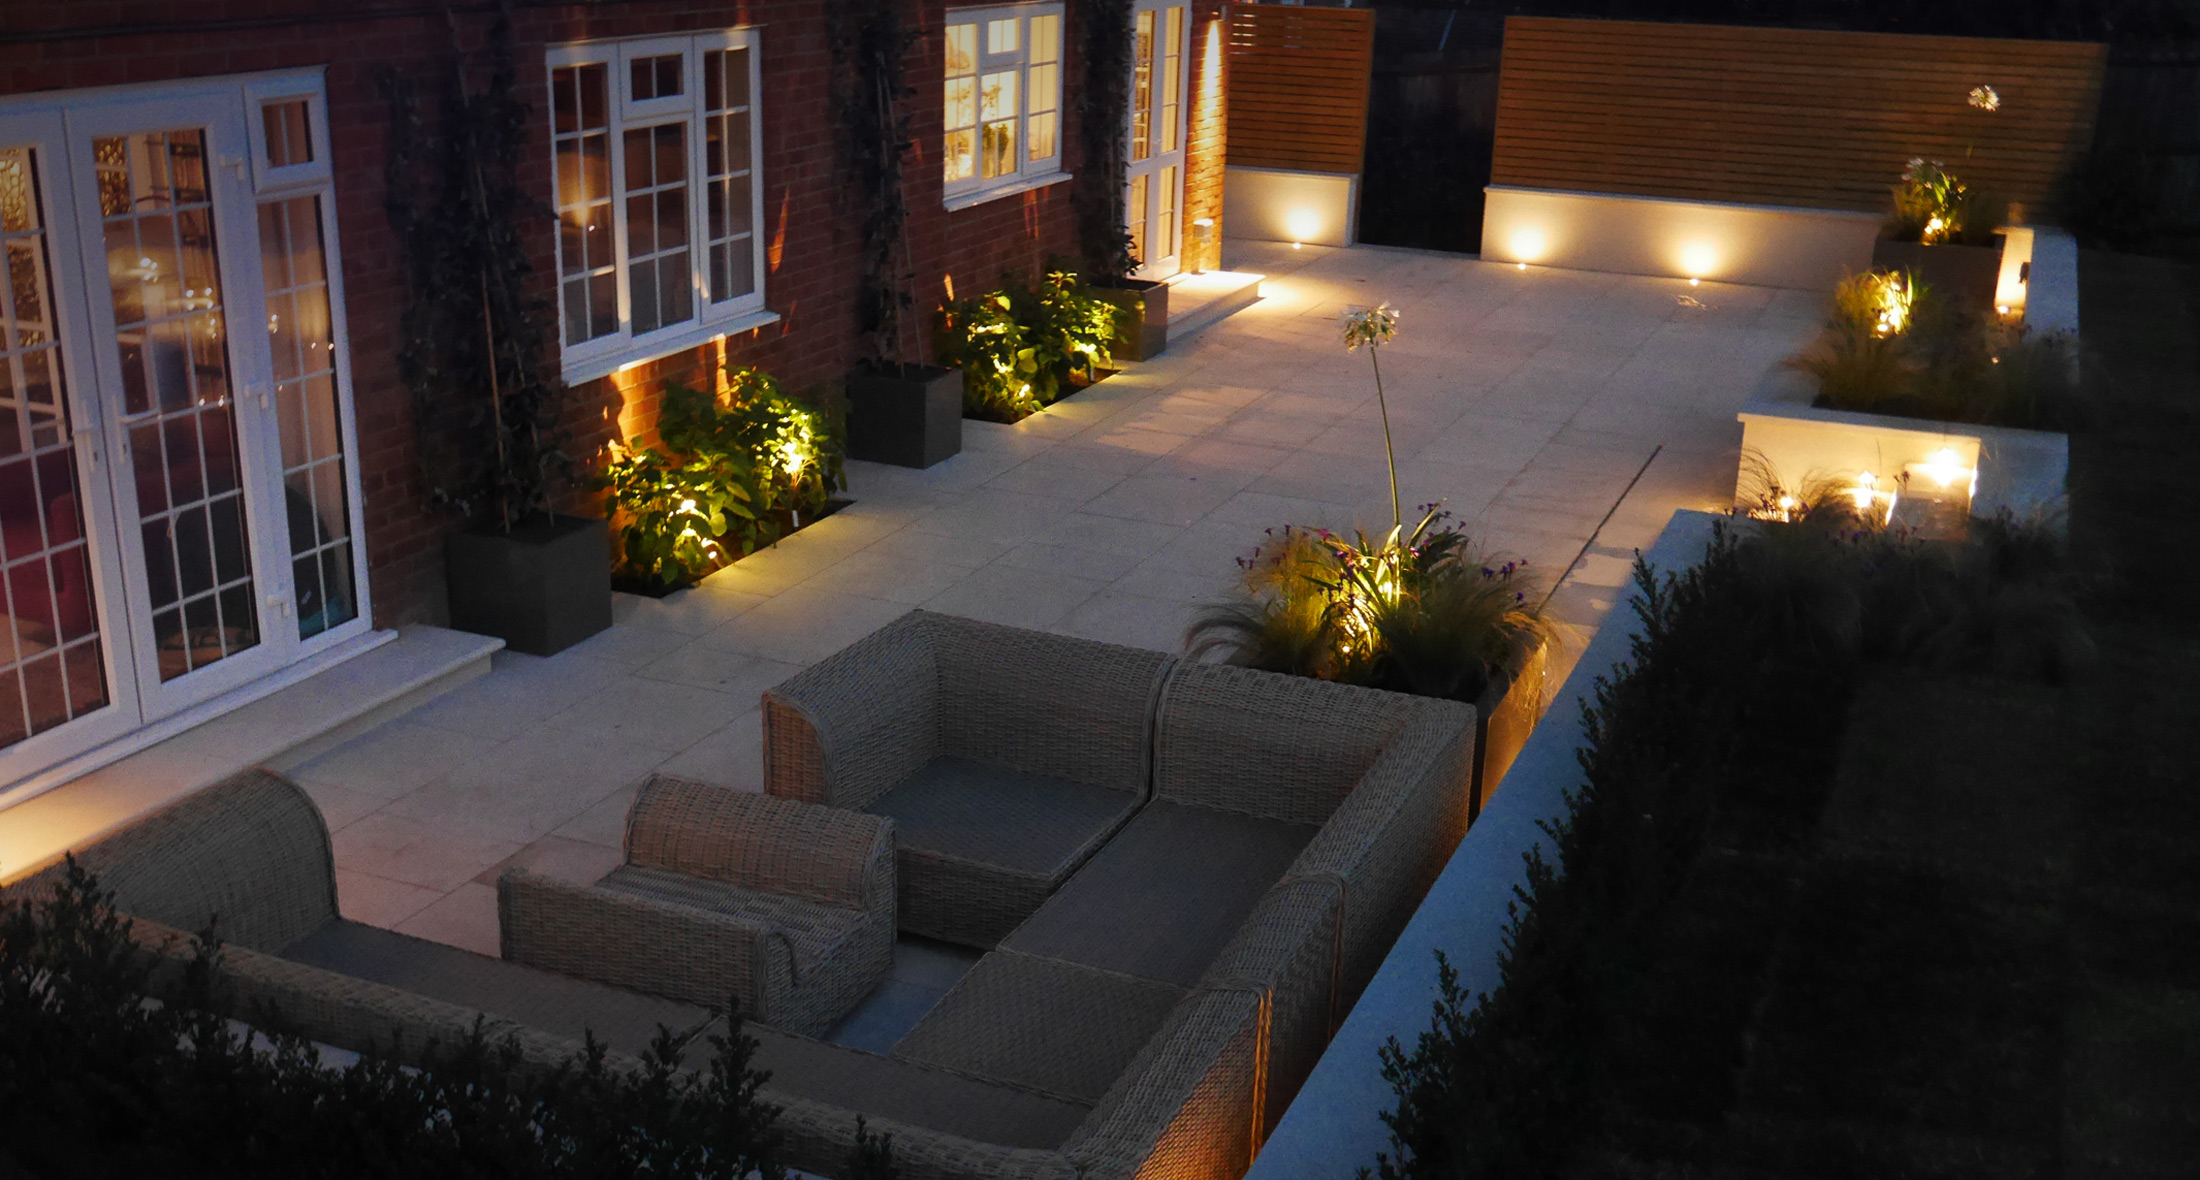 Slate Grey garden design lighting scheme on a newly finished project in Sevenoaks, Kent